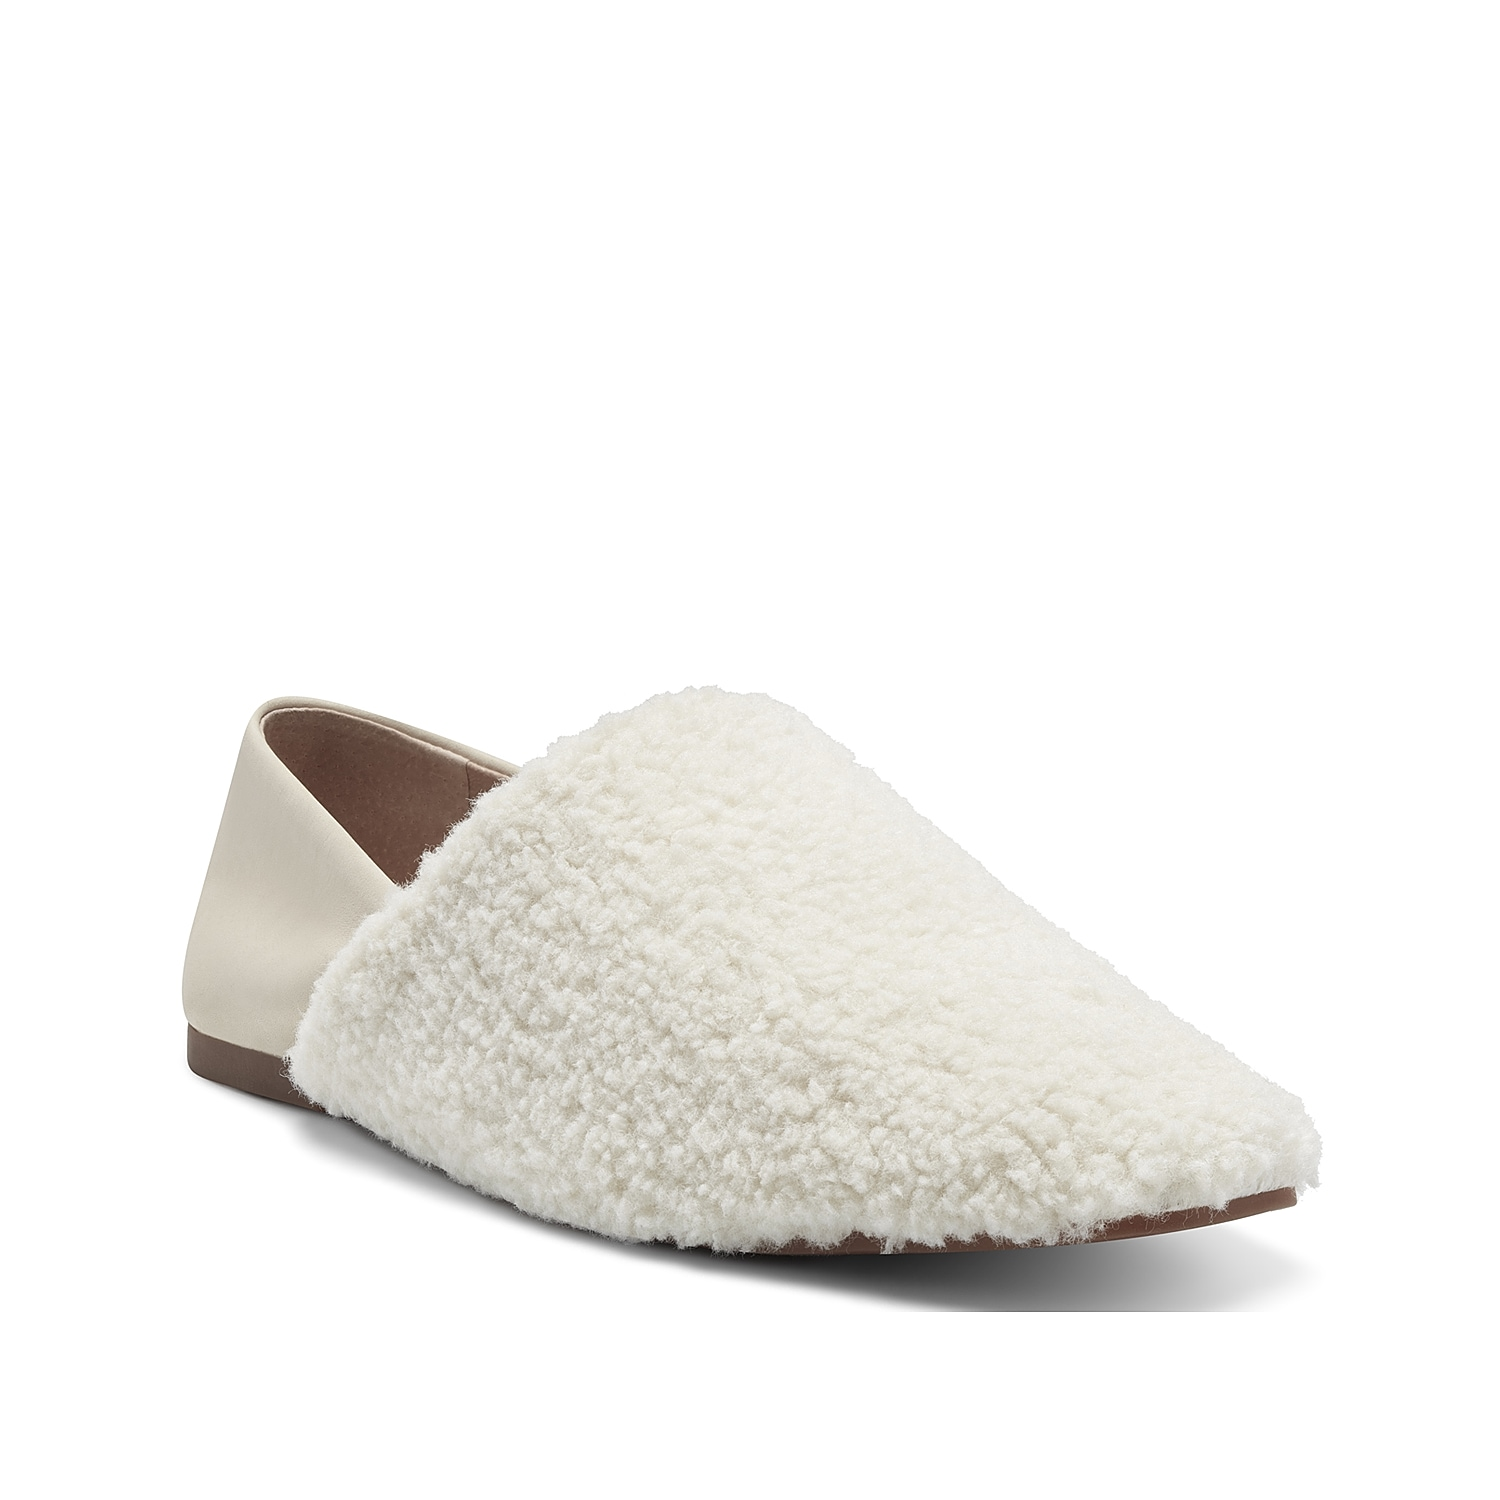 Be one step ahead of the latest trend with the unconventional Lucky Dichi slip-on. Featuring plush faux shearling upper and lining, this flat slip-on has a rubber sole for a reliable grip.